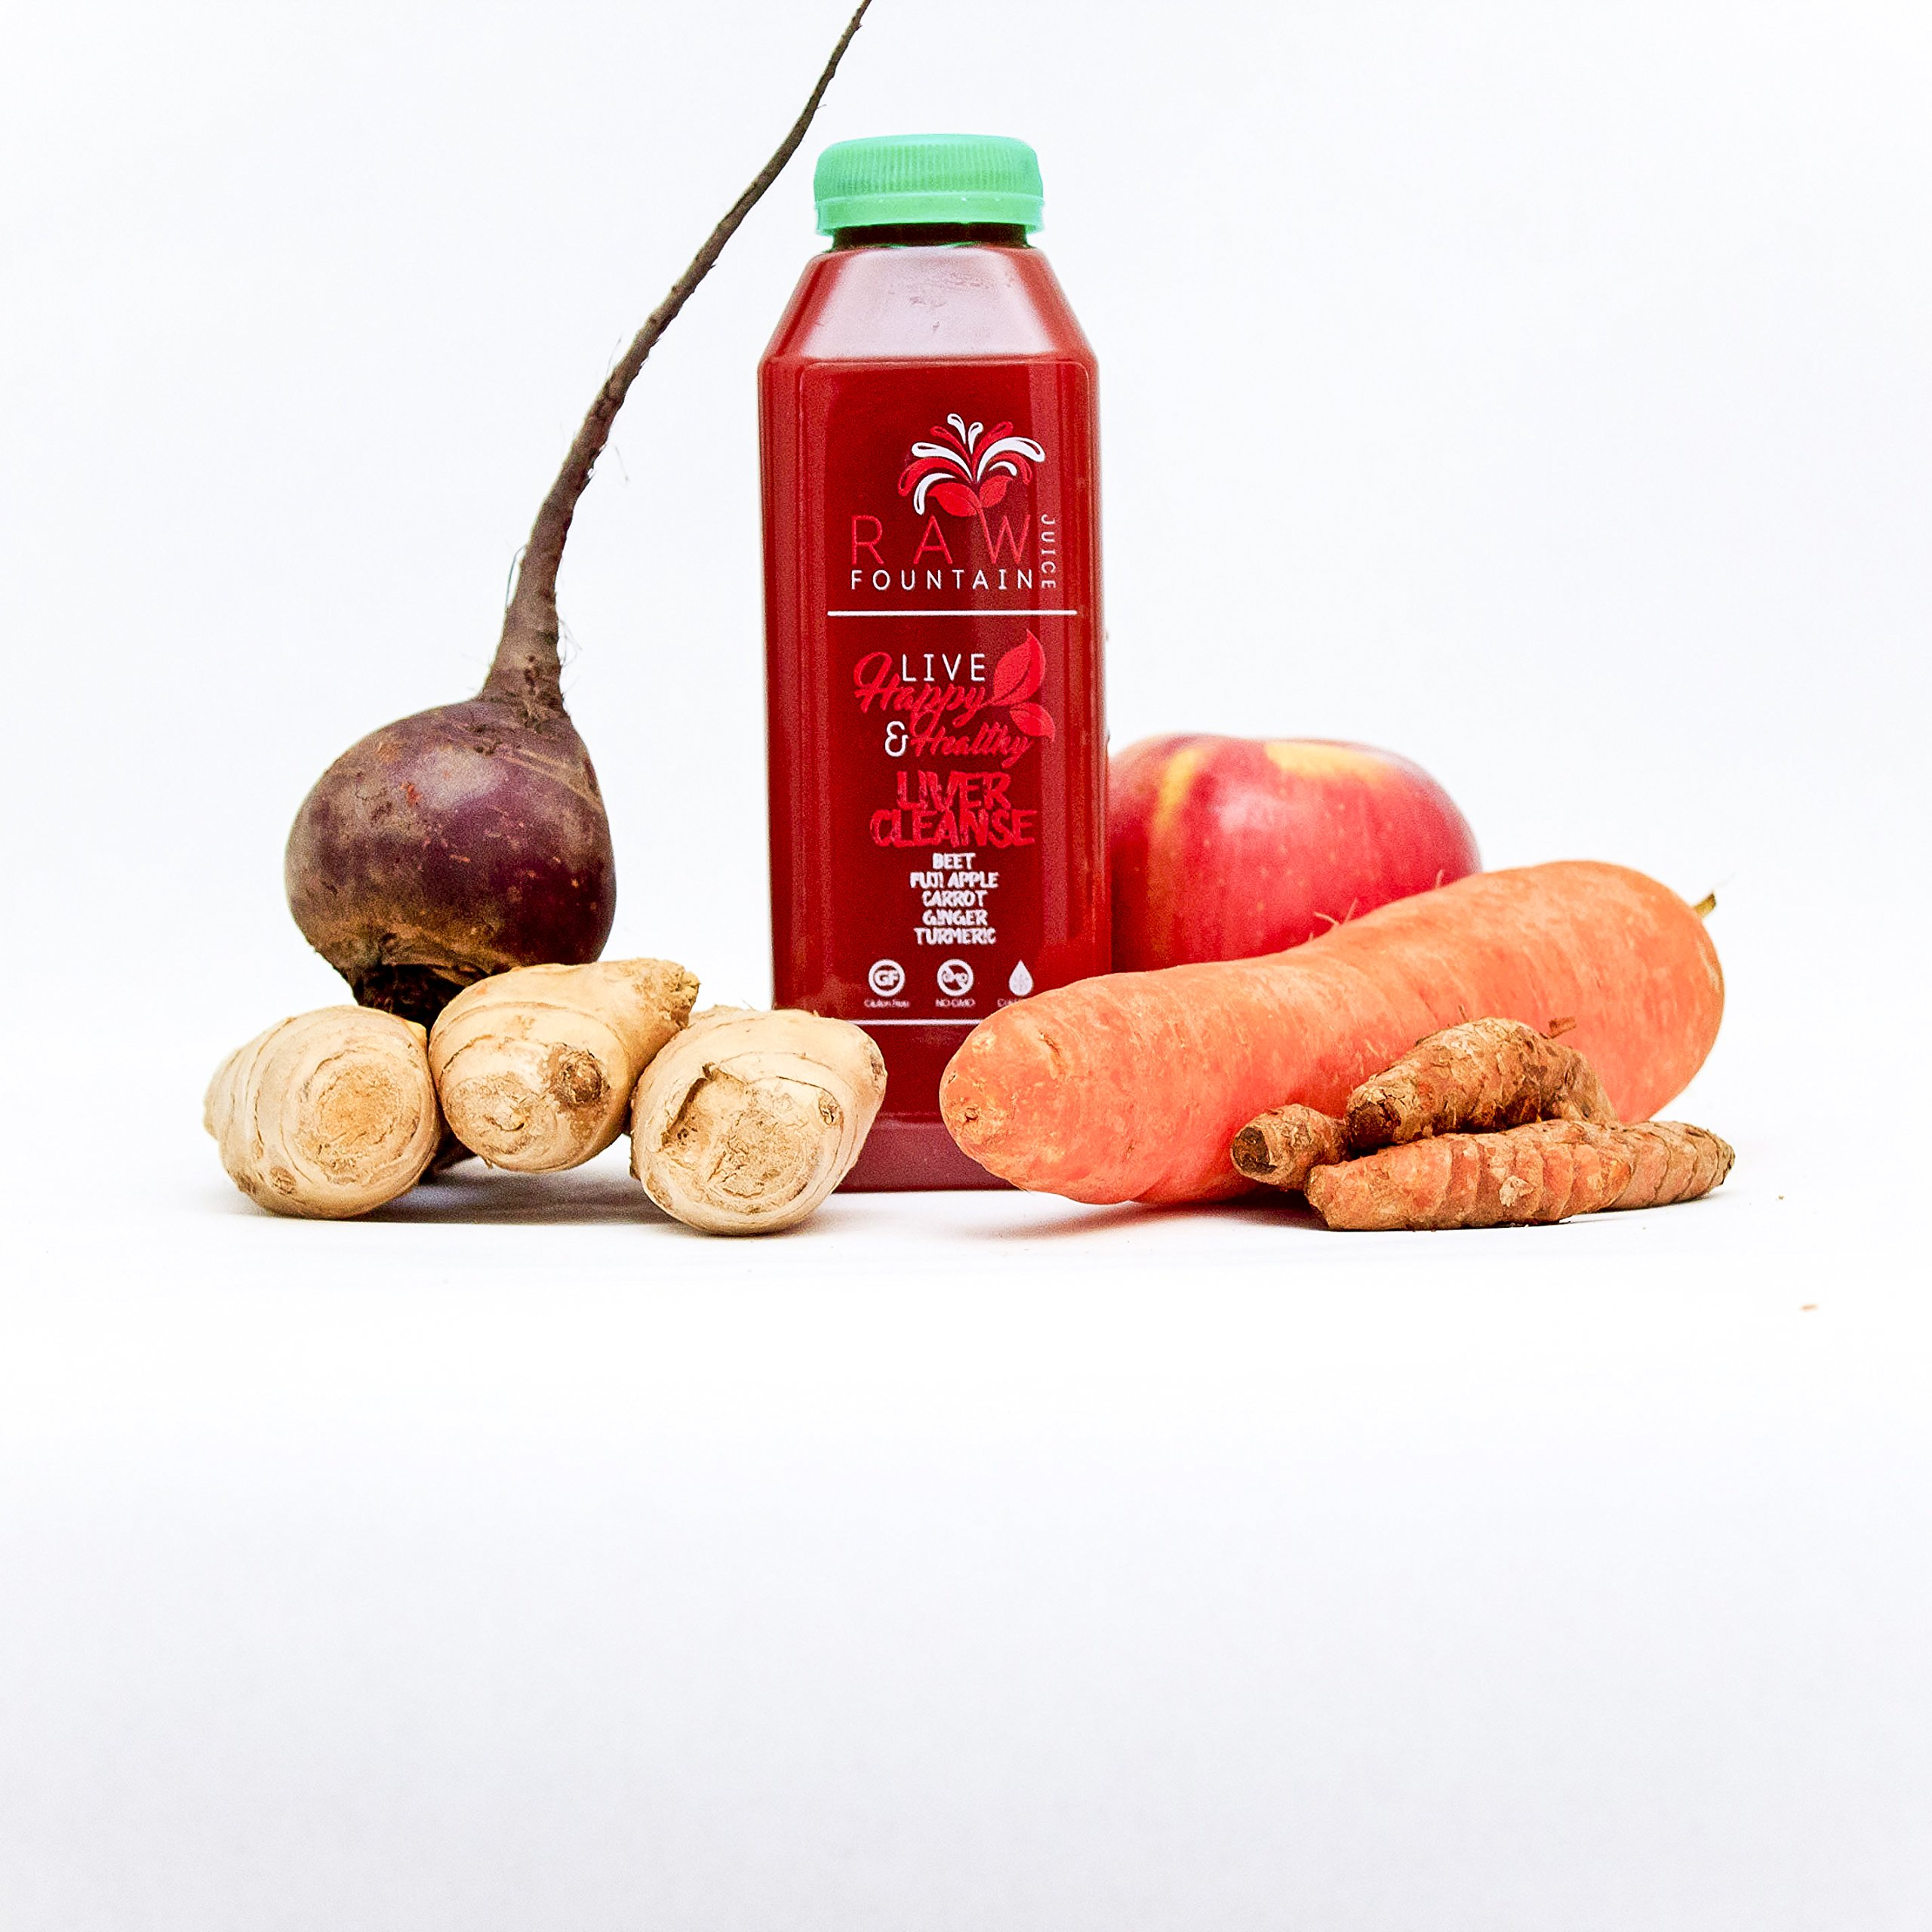 7 Day Juice Cleanse by Raw Fountain Juice - 100% Fresh Natural Organic Raw Vegetable & Fruit Juices - Detox Your Body in a Healthy & Tasty Way! - 42 Bottles (16 fl oz) + 7 BONUS Ginger Shots by Raw Threads (Image #6)